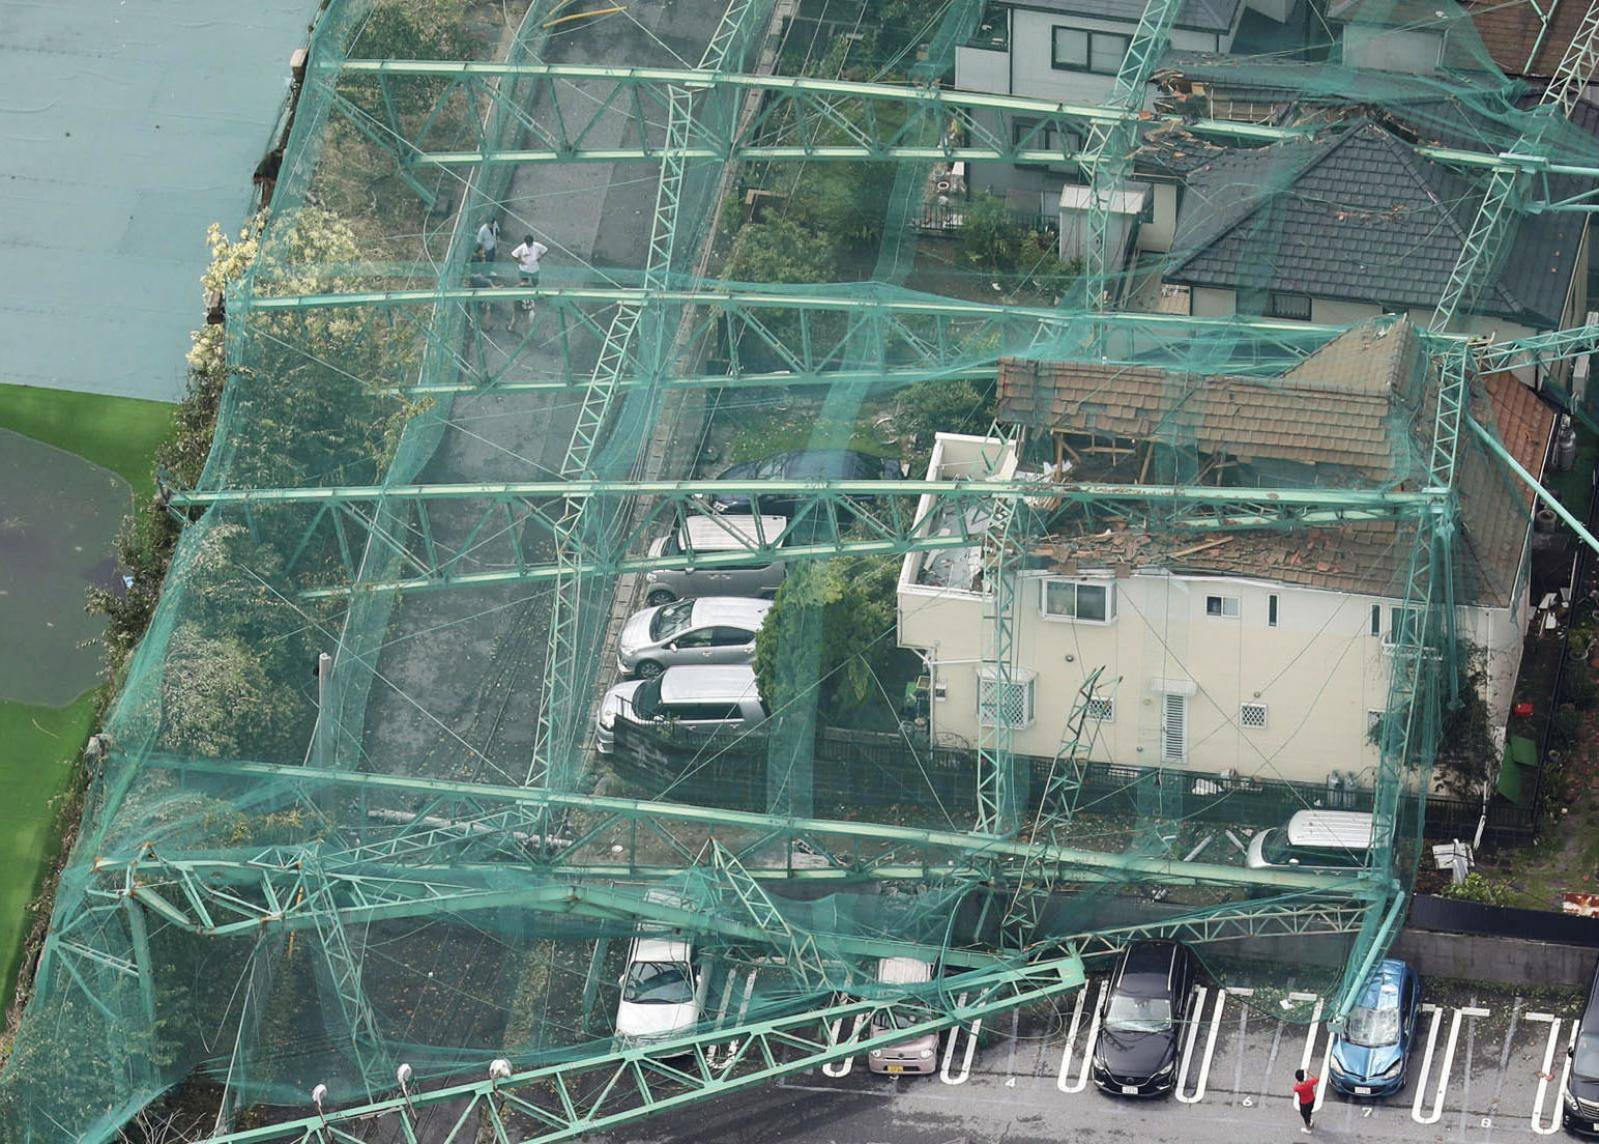 Houses and cars damaged by a collapse of the perimeter netting of a golf training field due to strong winds of Typhoon Faxai are seen in Ichihara